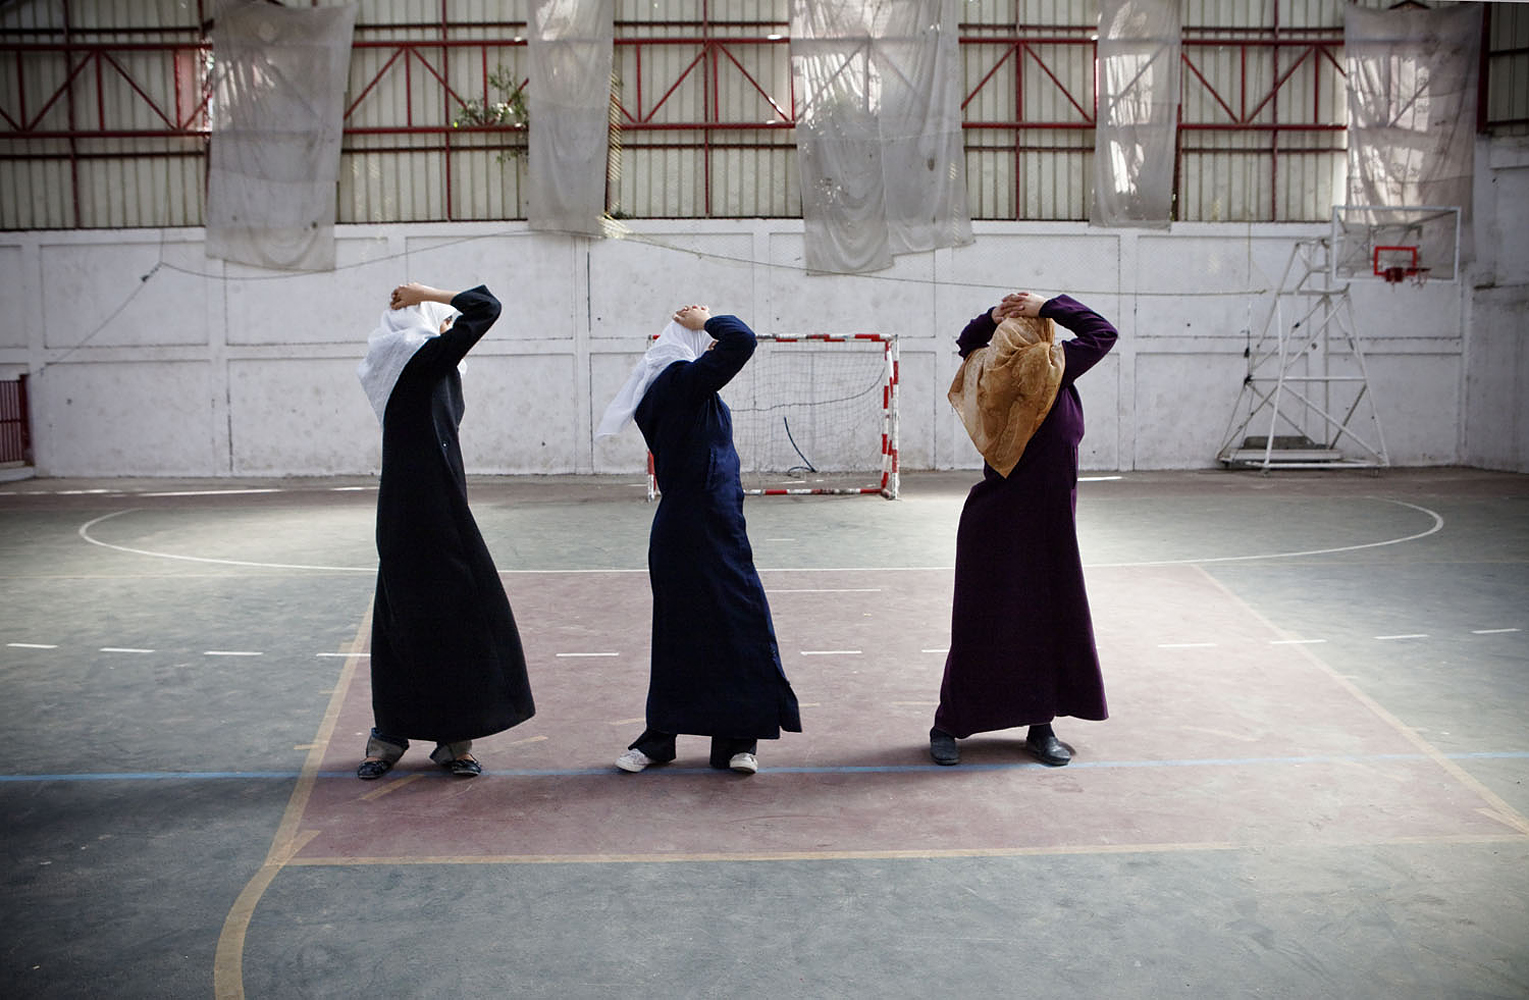 Tanya Habjouqa's recent work documents the everyday lives of Palestinian women in the Gaza Strip. Here, young women exercise in gym class at their school, where the Women's Charitable Society helps organize activities for them in Gaza, Oct. 28, 2009.